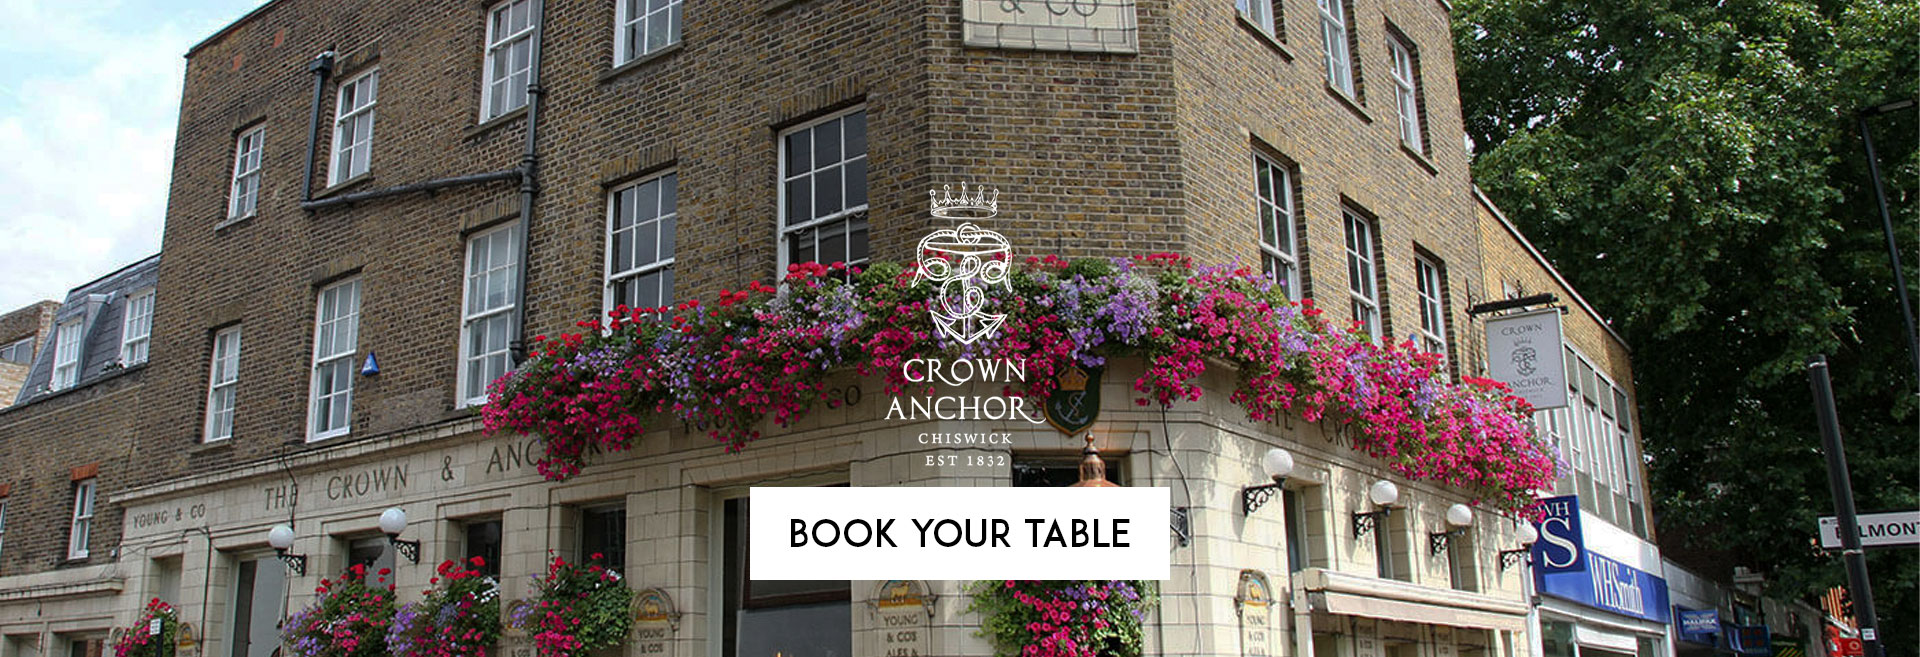 Book Your Table at The Crown and Anchor